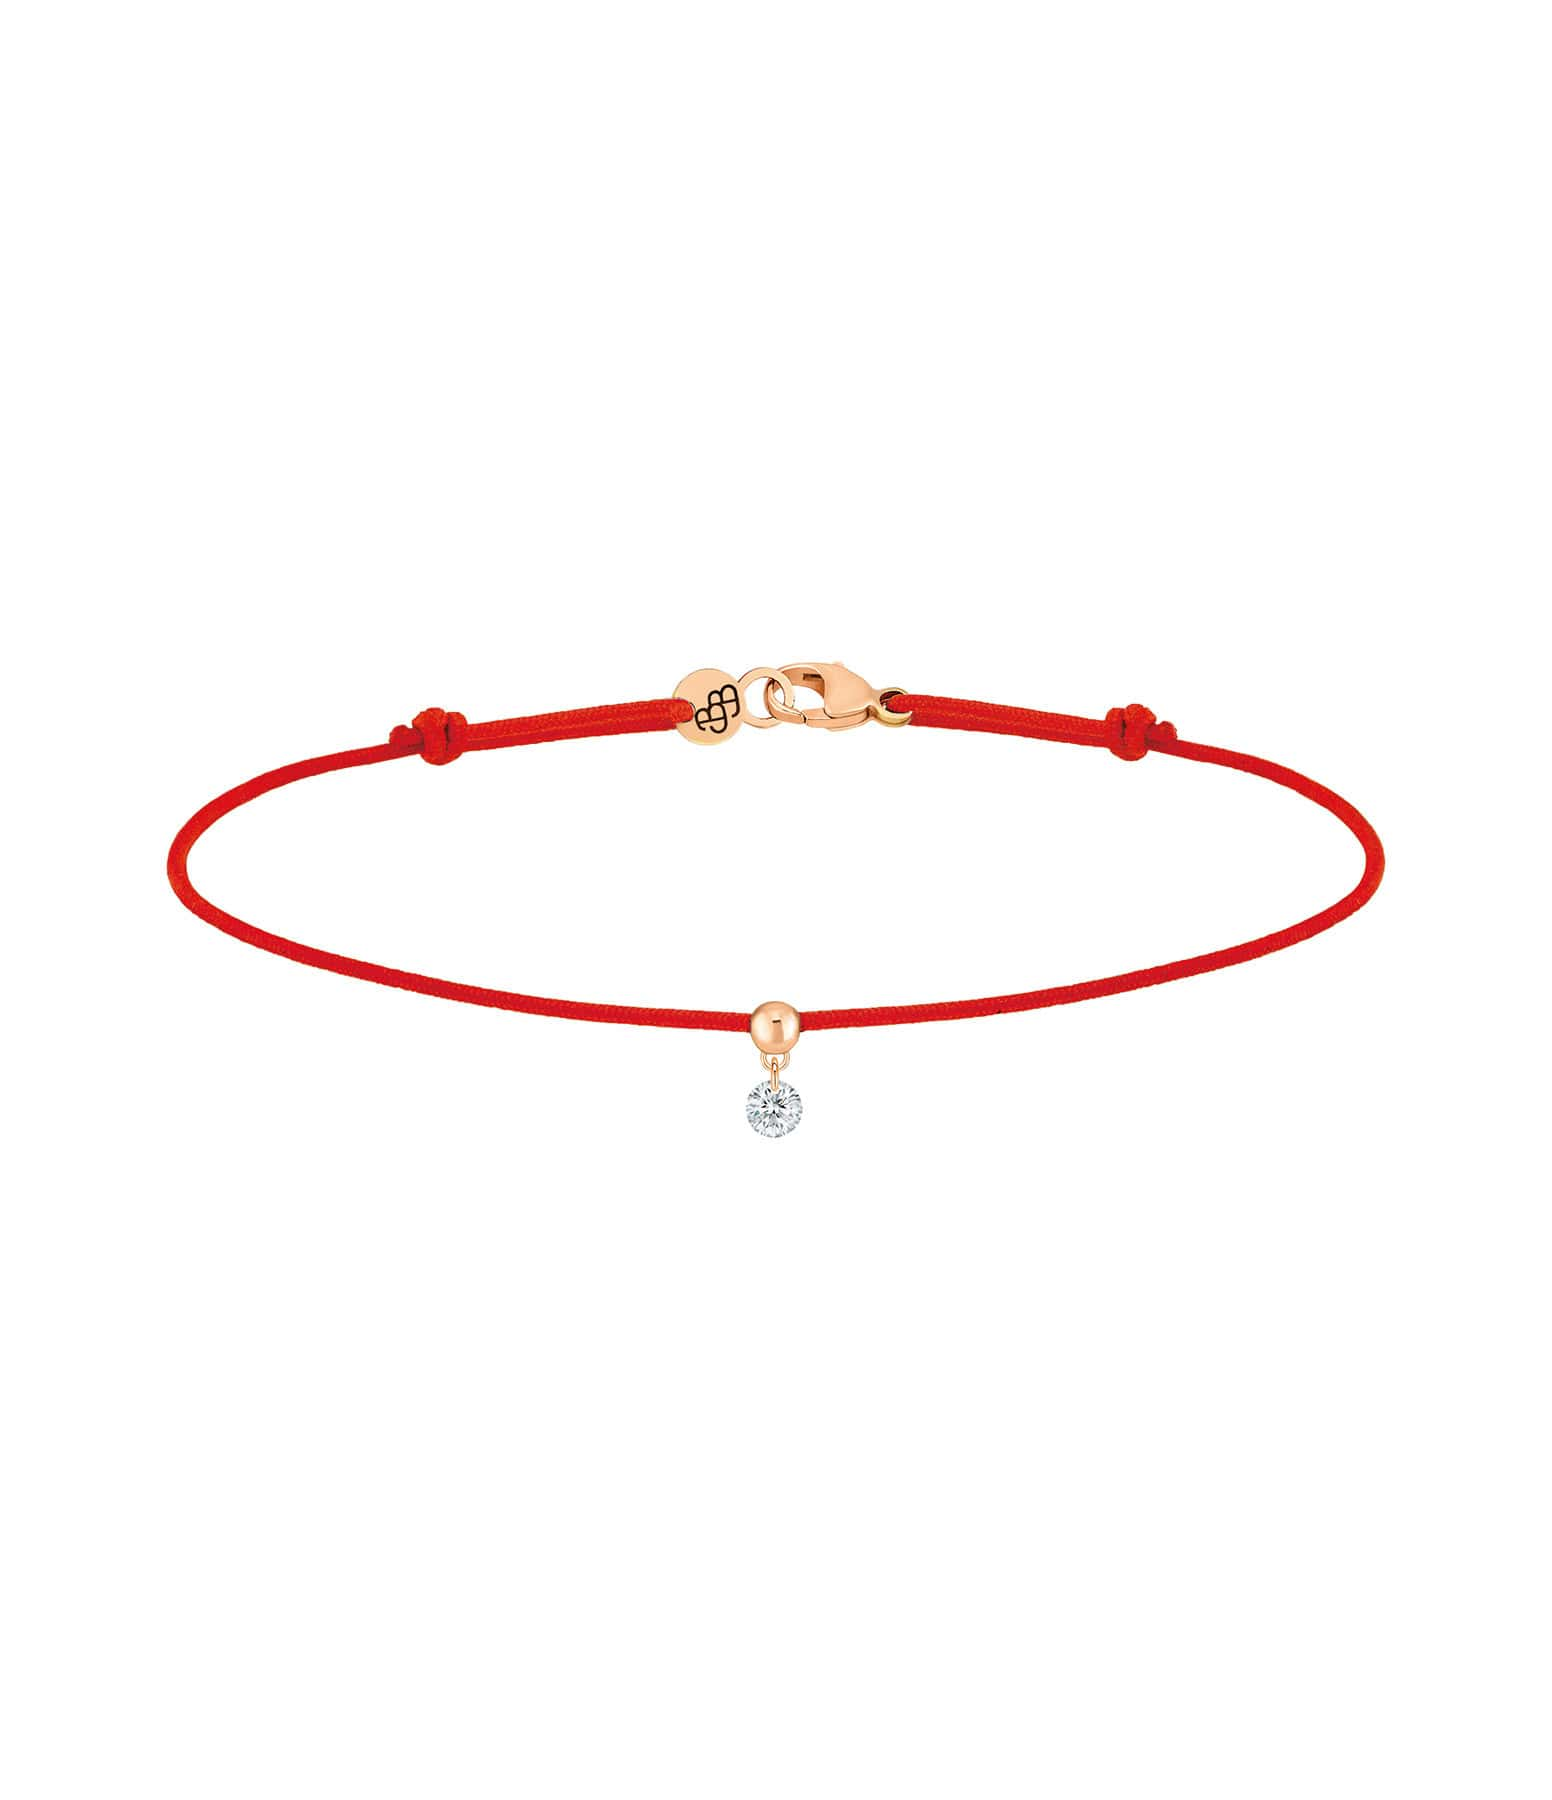 LA BRUNE & LA BLONDE - Bracelet BB Diamant Brillant Cordon Rouge Or Blanc